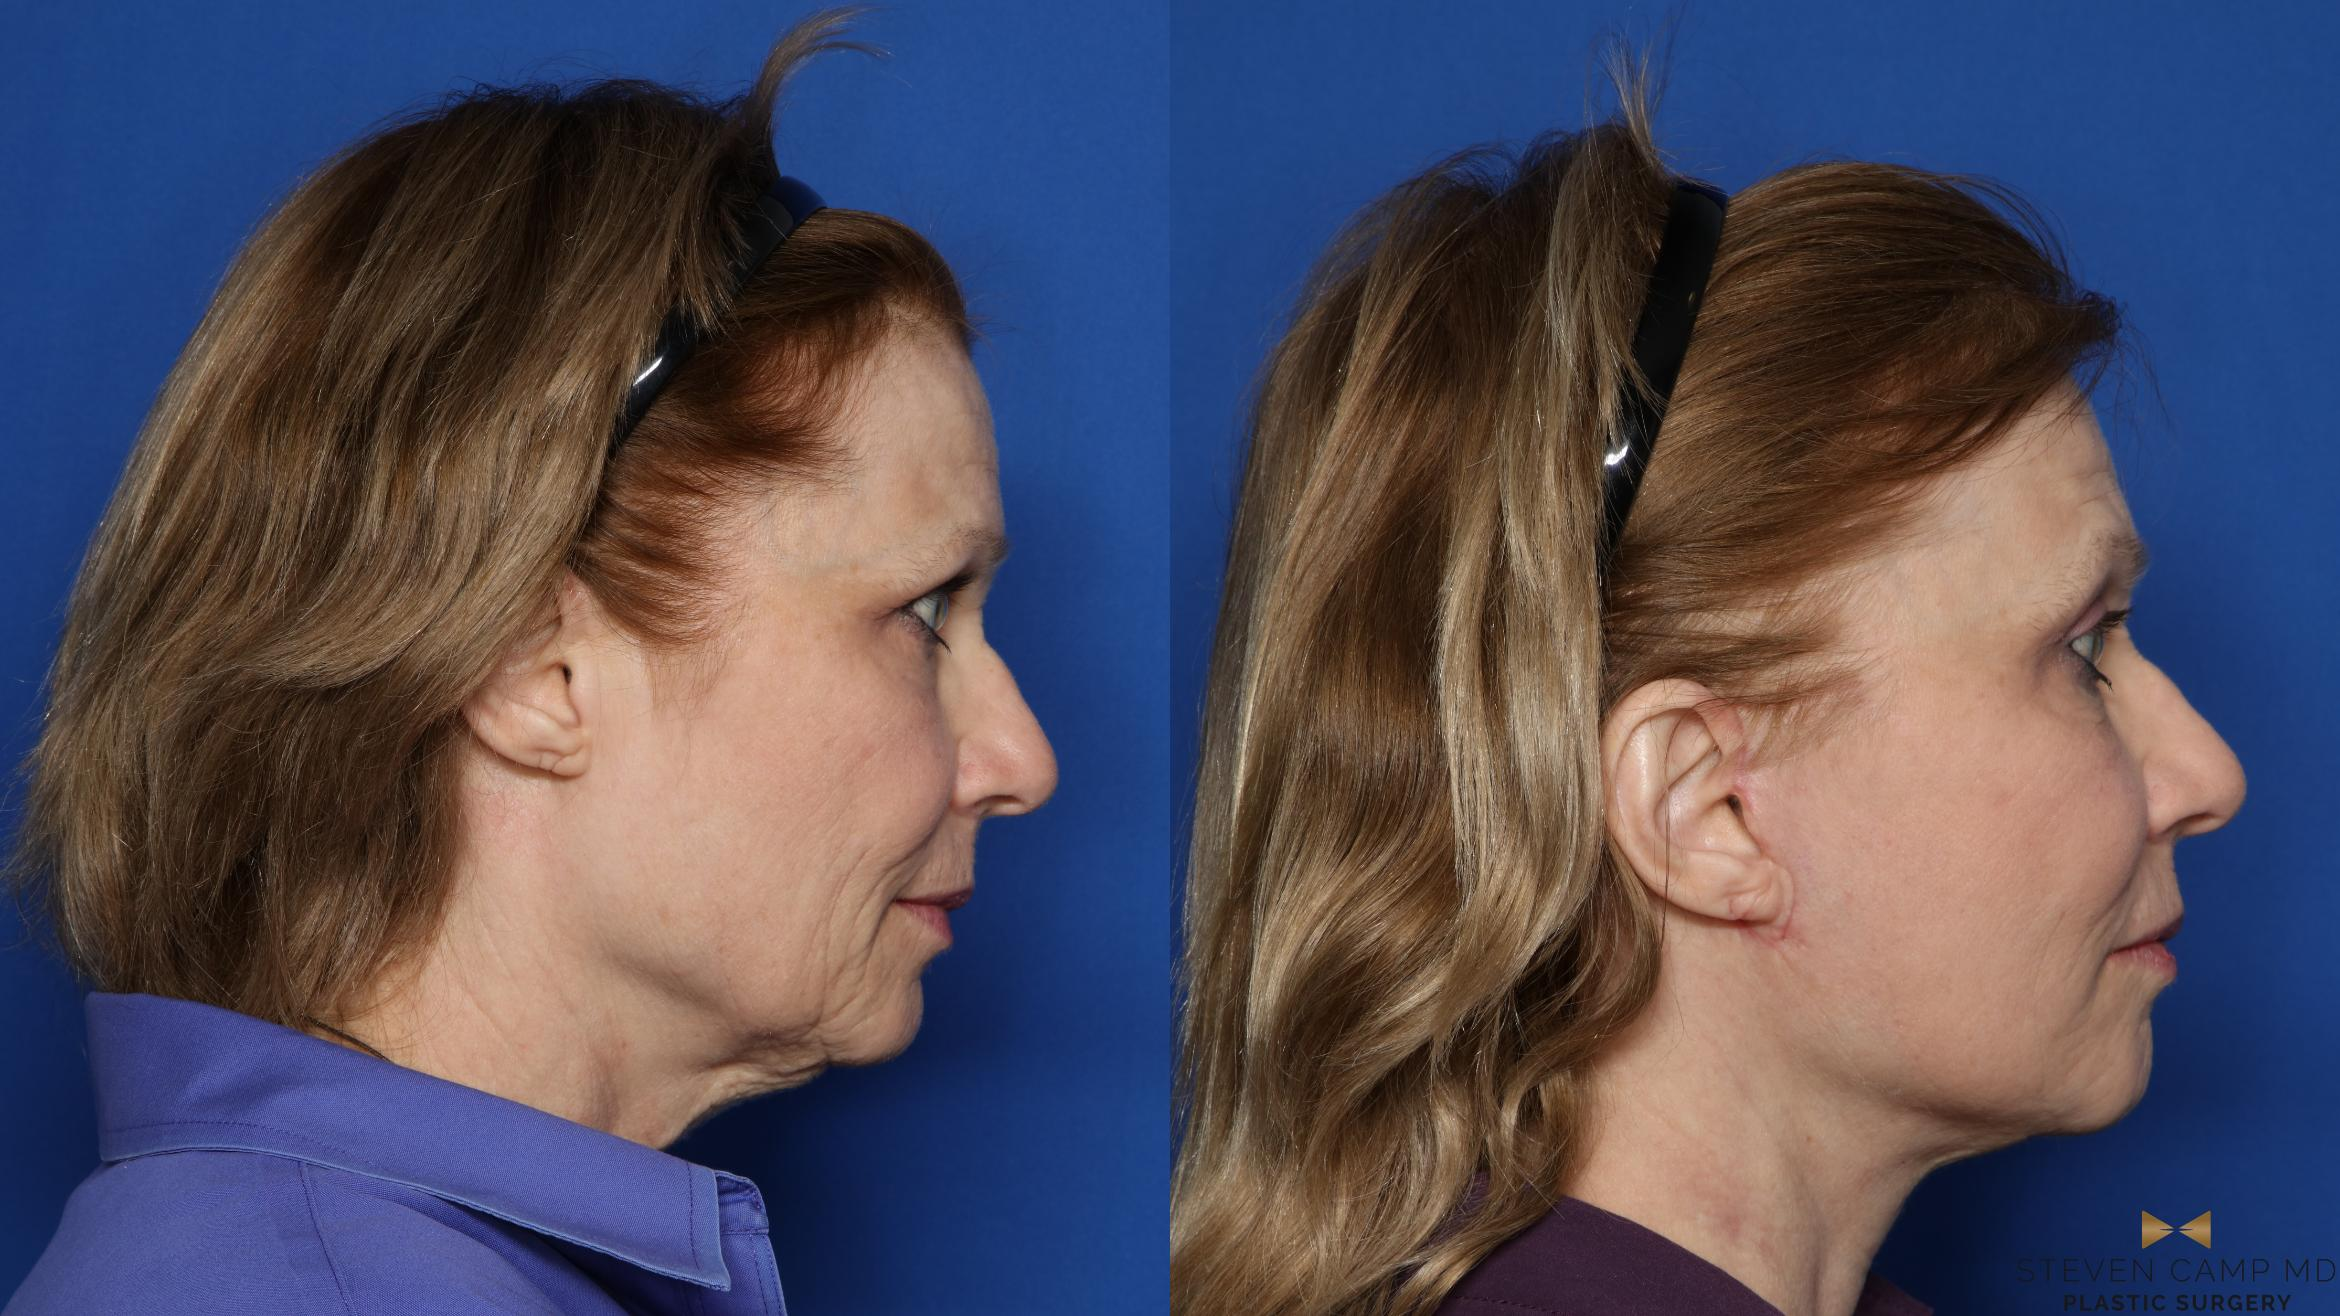 Facelift Before & After Photo | Fort Worth, Texas | Steven Camp MD Plastic Surgery